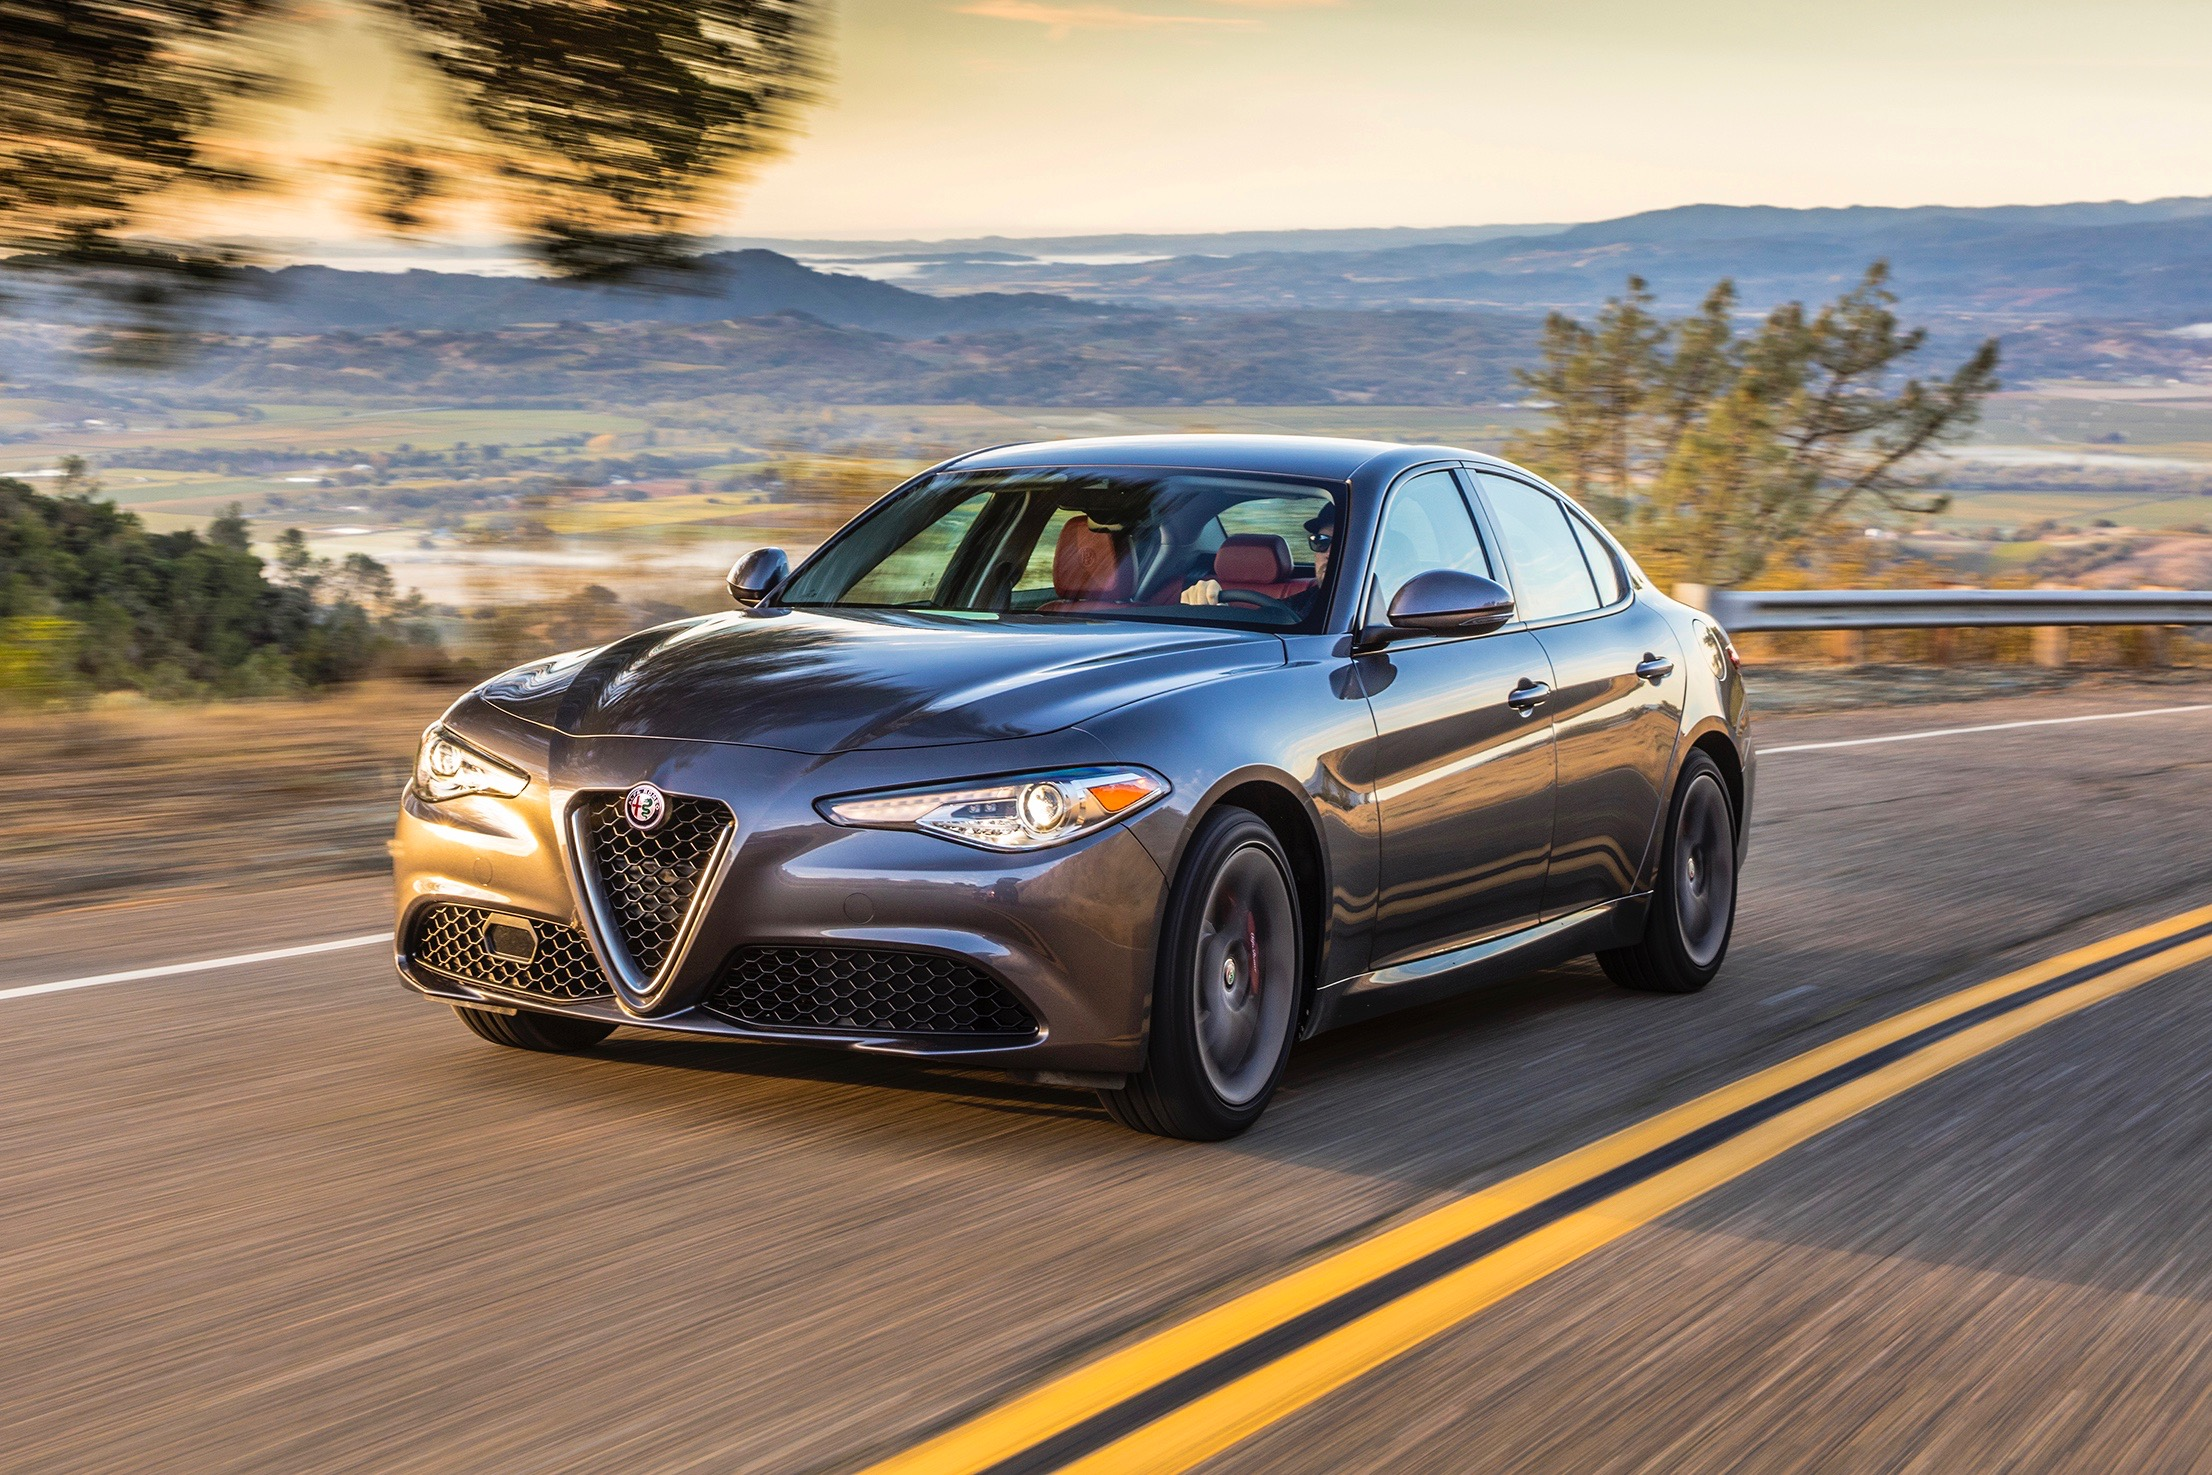 Low-cost Luxury: 5 Appealing Entry-level Cars from Premium Brands